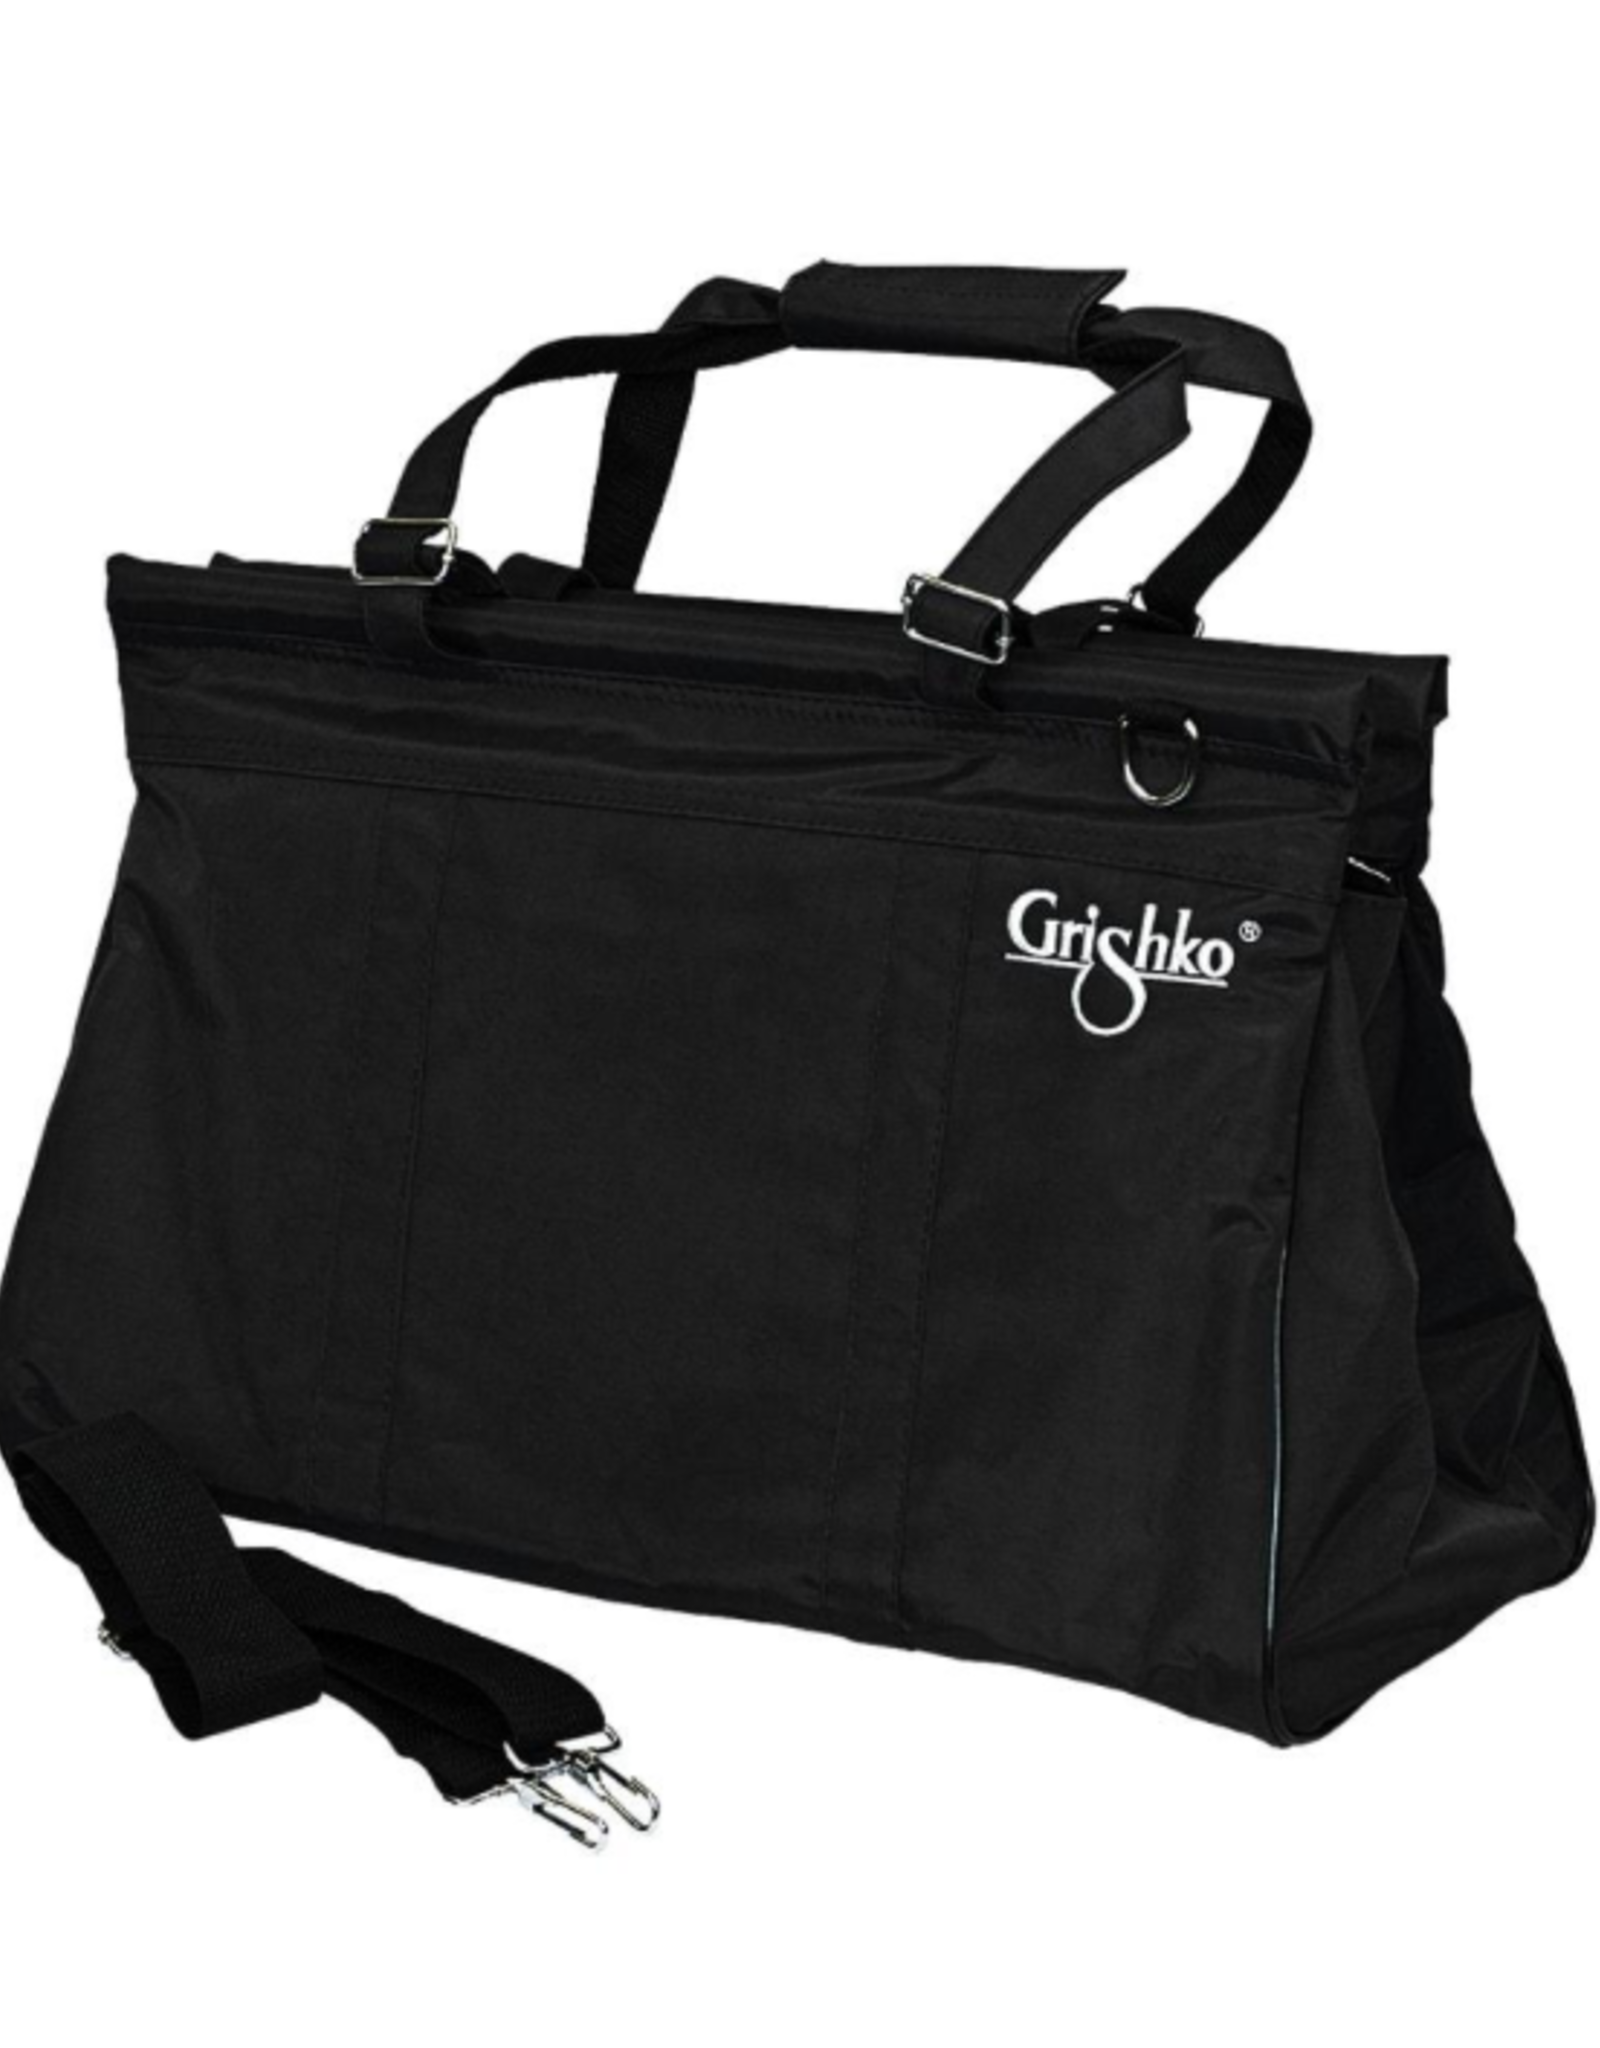 GRISHKO LARGE COMPARTMENT TRAVEL BAG (5107)